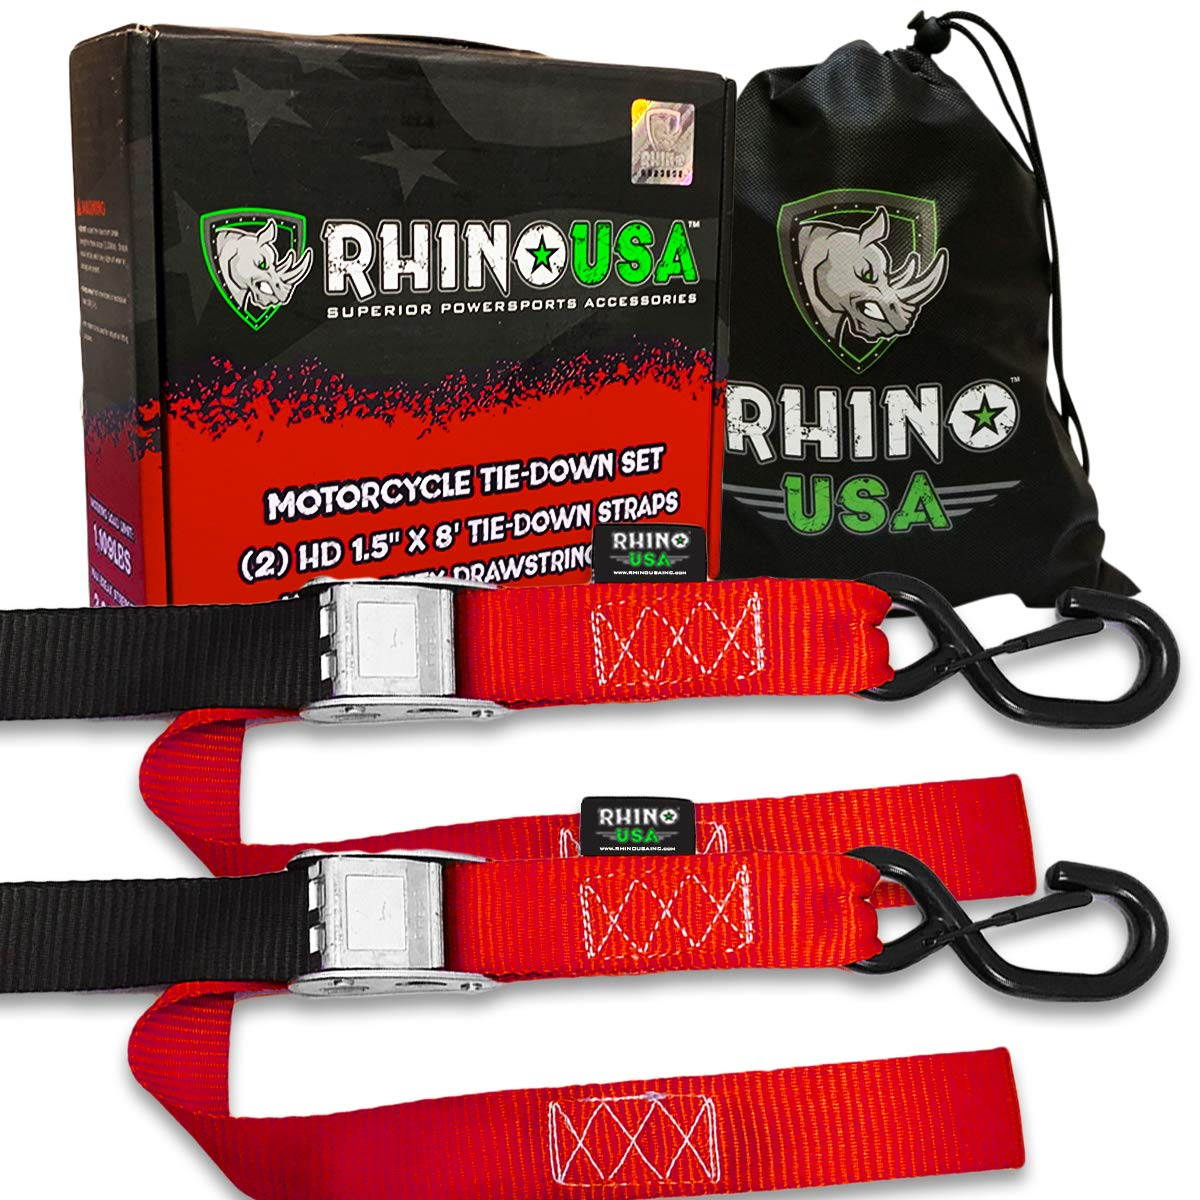 RHINO USA Motorcycle Tie Down Straps (2 Pack) Lab Tested 3,328lb Break Strength, Steel Cambuckle Tiedown Set with Integrated Soft Loops - Better Than a Ratchet Strap by Rhino USA